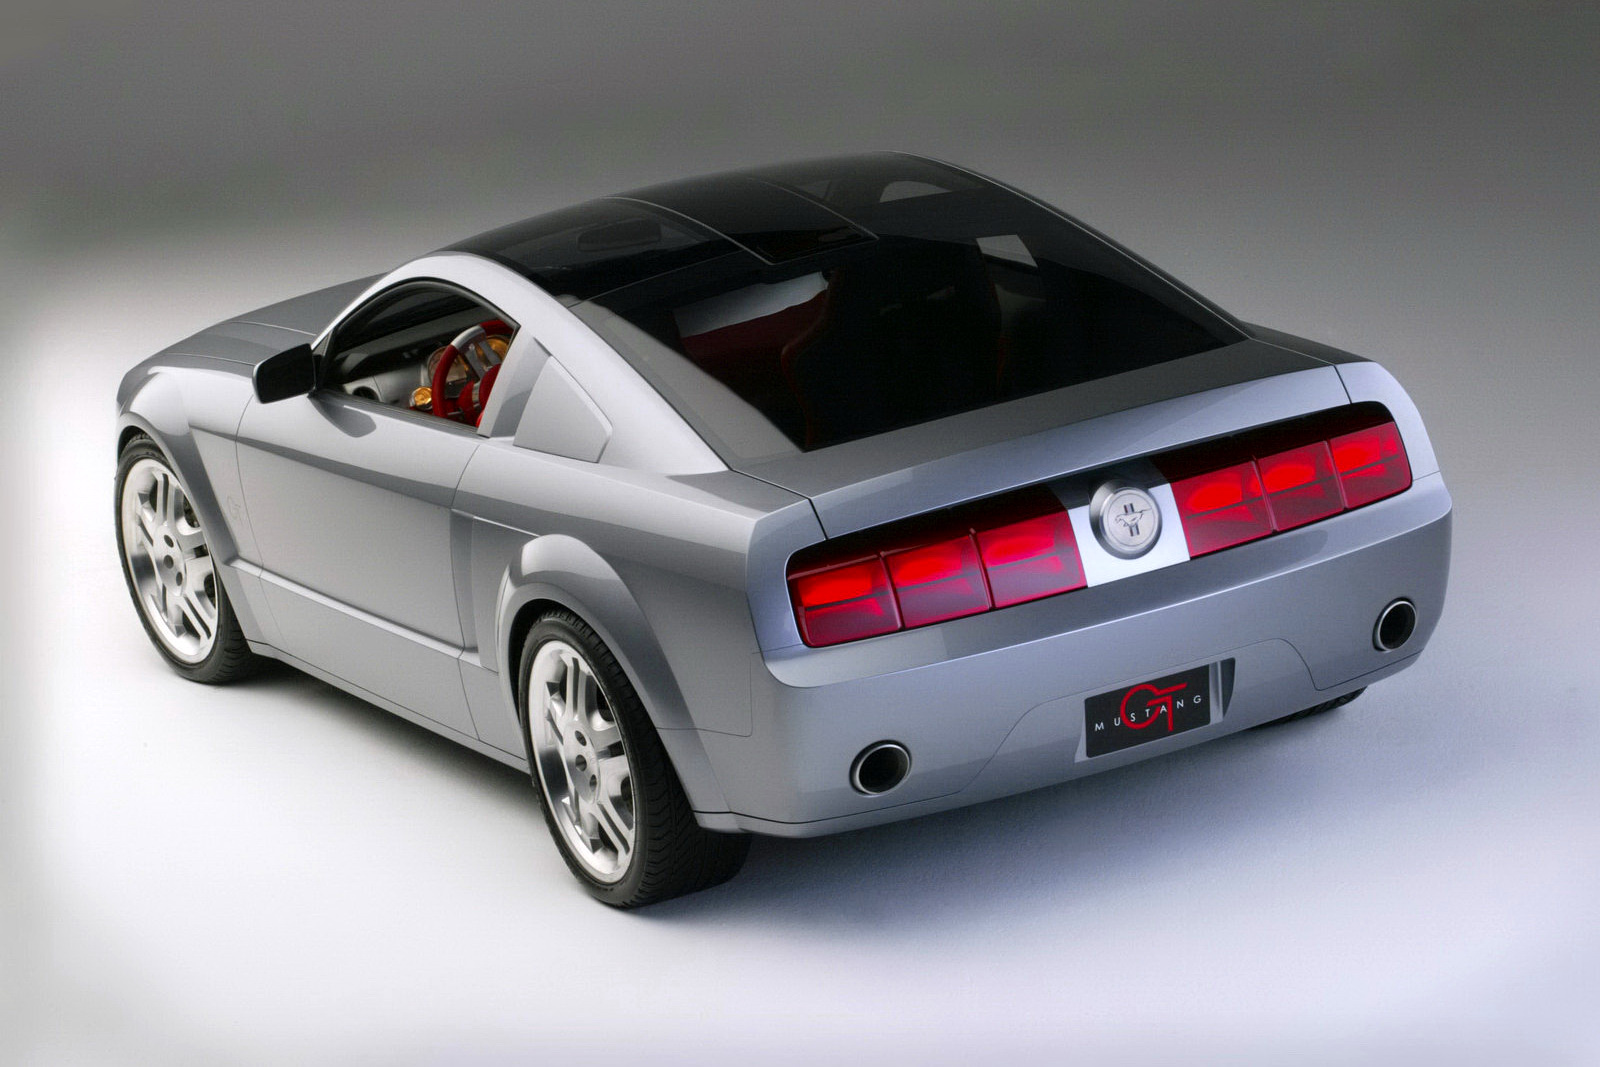 Gt350r For Sale >> 2004 Mustang Convertible Concept for sale | AmcarGuide.com - American muscle car guide